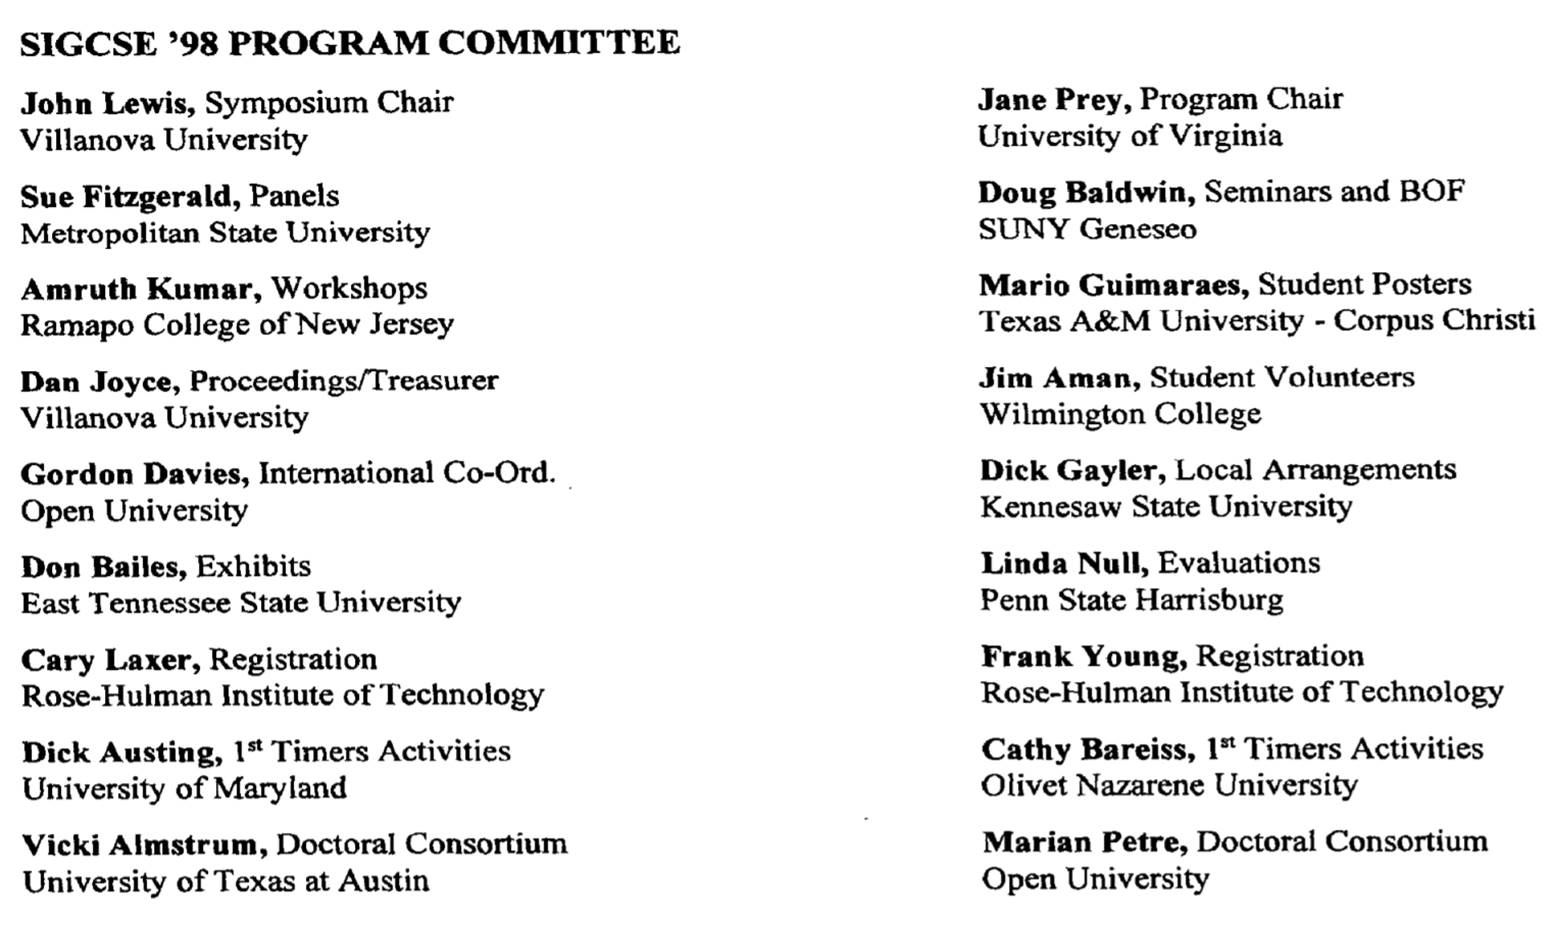 Program Committee of the 29nd Technical Symposium